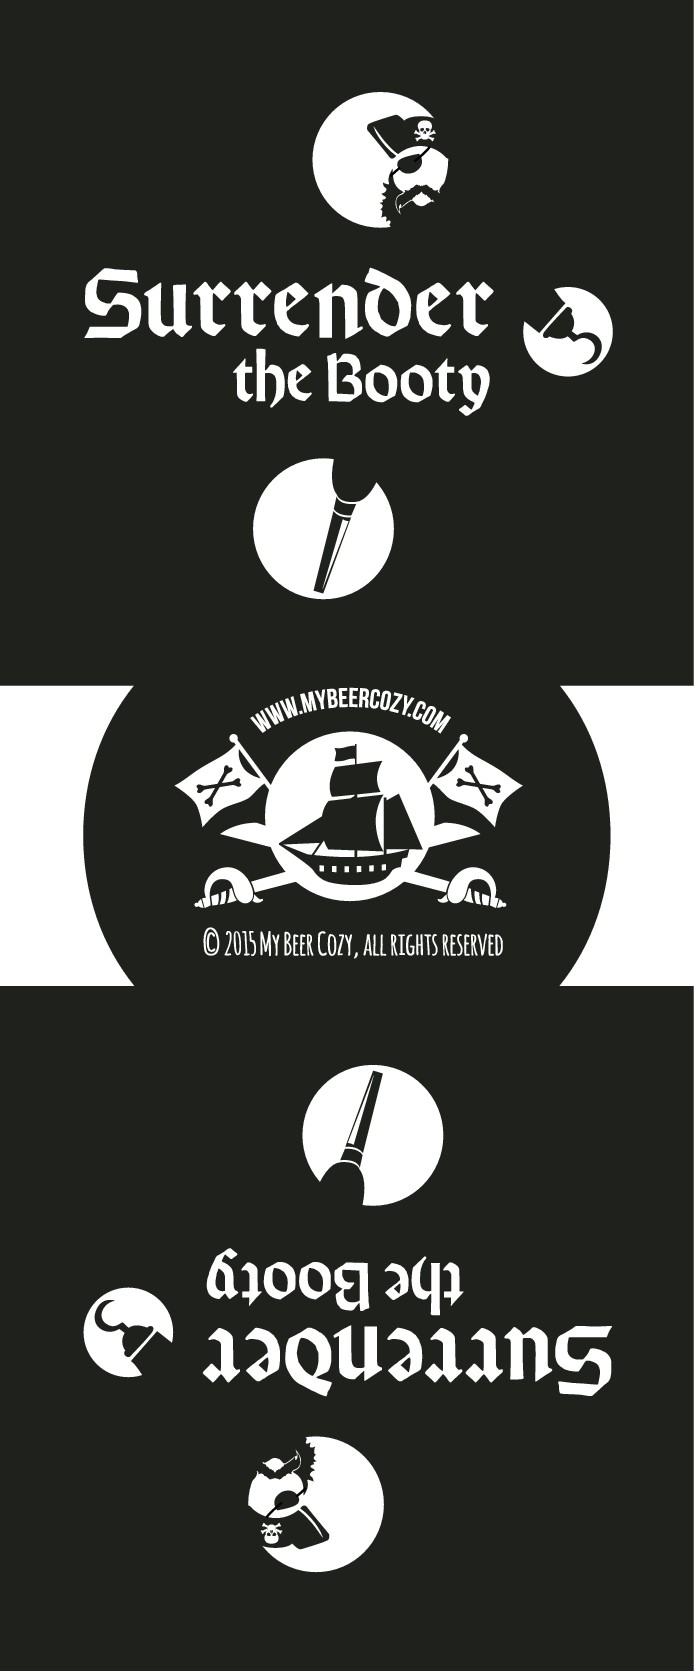 My Beer Cozy Pirate-Themed Designs: 4 Separate Designs + 1 Bottom Design